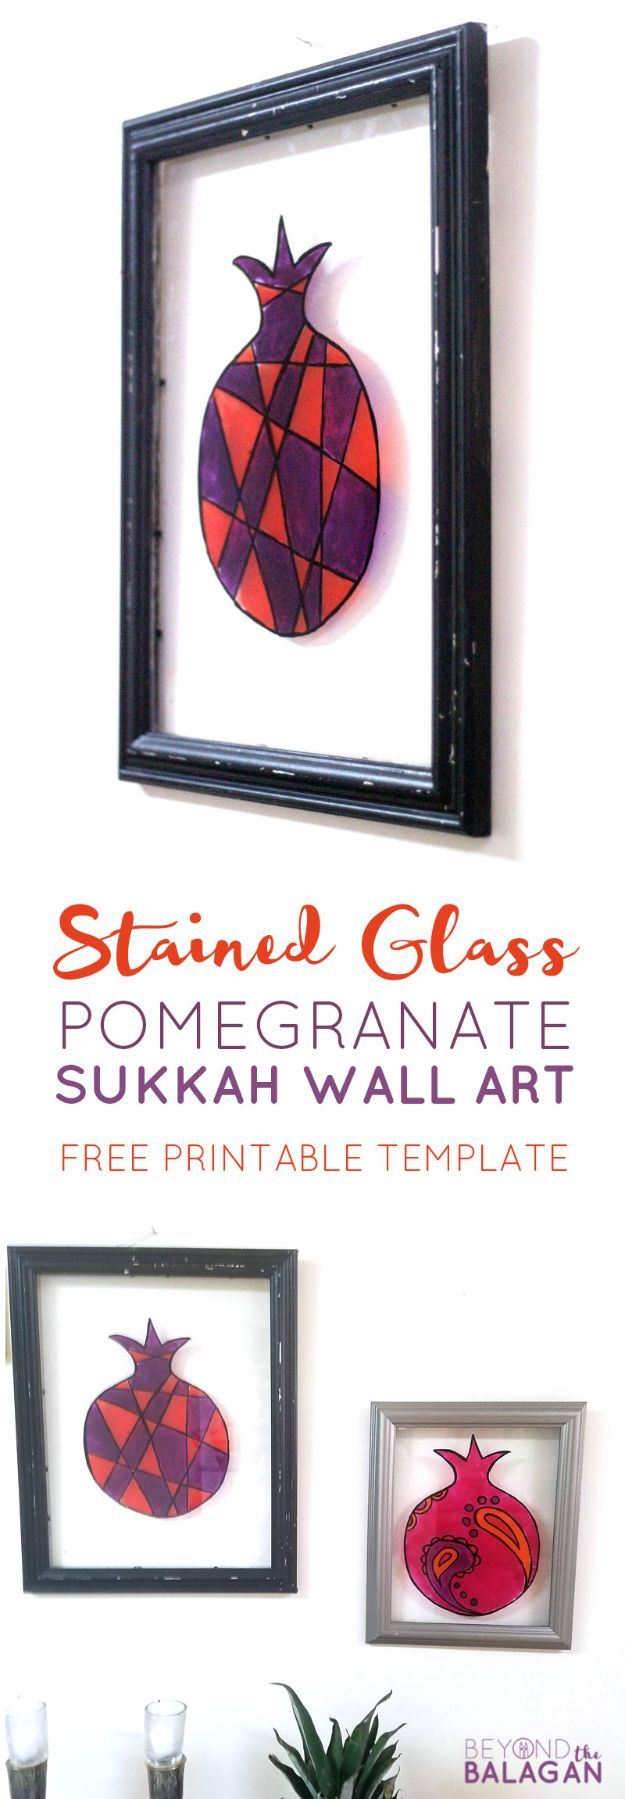 DIY Wall Art Ideas for Teens - Stained Glass Pomegranate Sukkah Wall Art - Teen Boy and Girl Bedroom Wall Decor Ideas - Cheap Canvas Paintings and Wall Hangings For Room Decoration